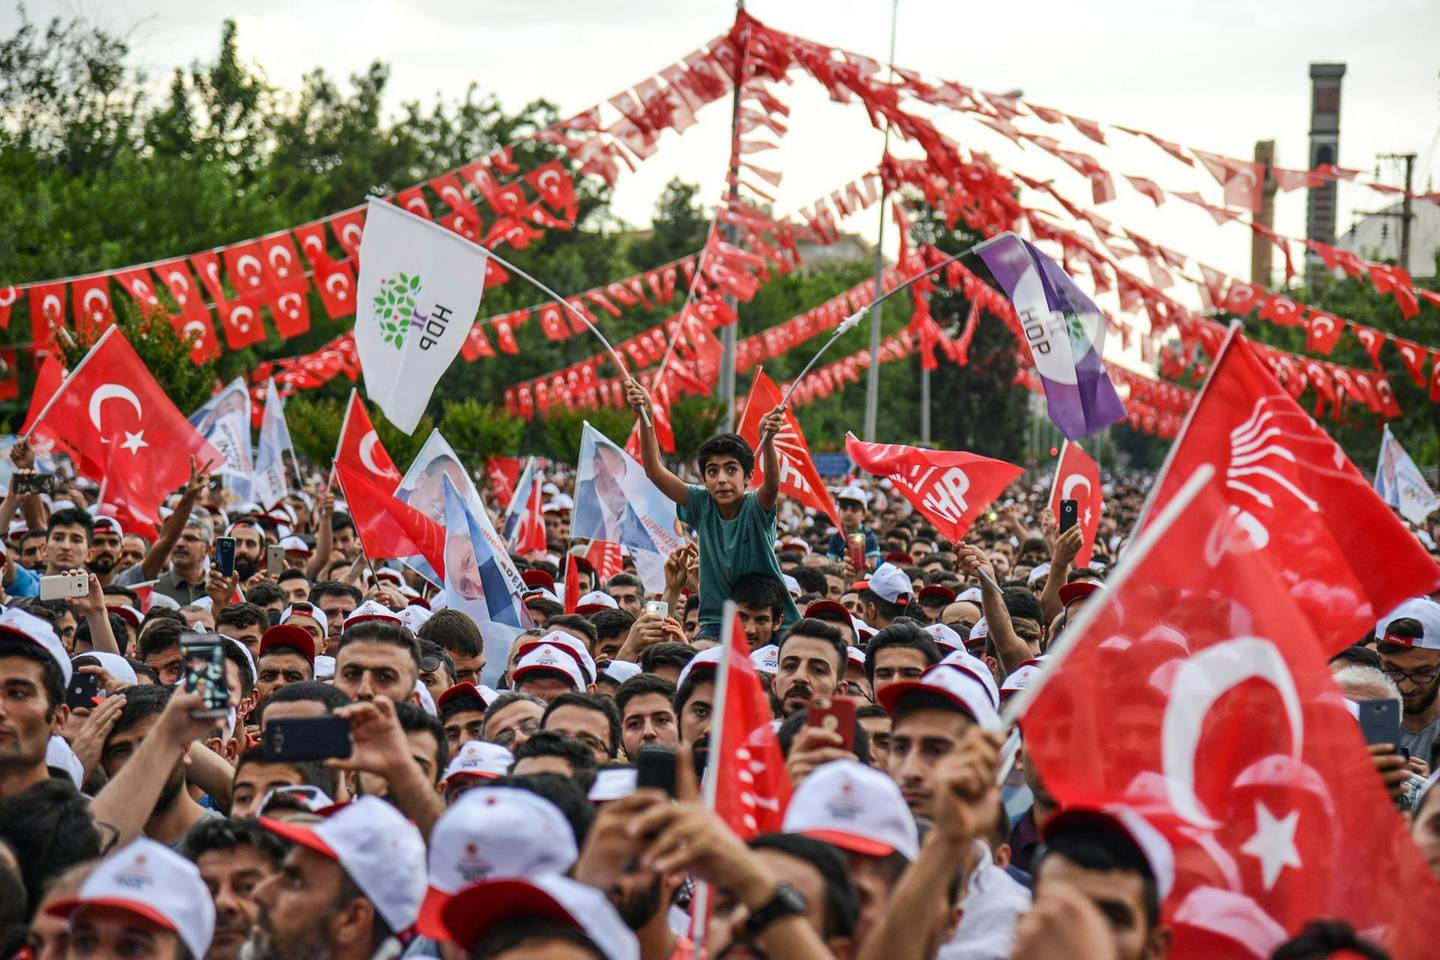 TOPSHOT - People attend a campaign meeting of Presidential candidate of Turkey's main opposition Republican People's Party (CHP), Muharrem Ince (unseen) in Diyarbakir on June 11, 2018, ahead of the Turkish presidential and parliamentary elections which will be held on June 24, 2018.  / AFP / ILYAS AKENGIN